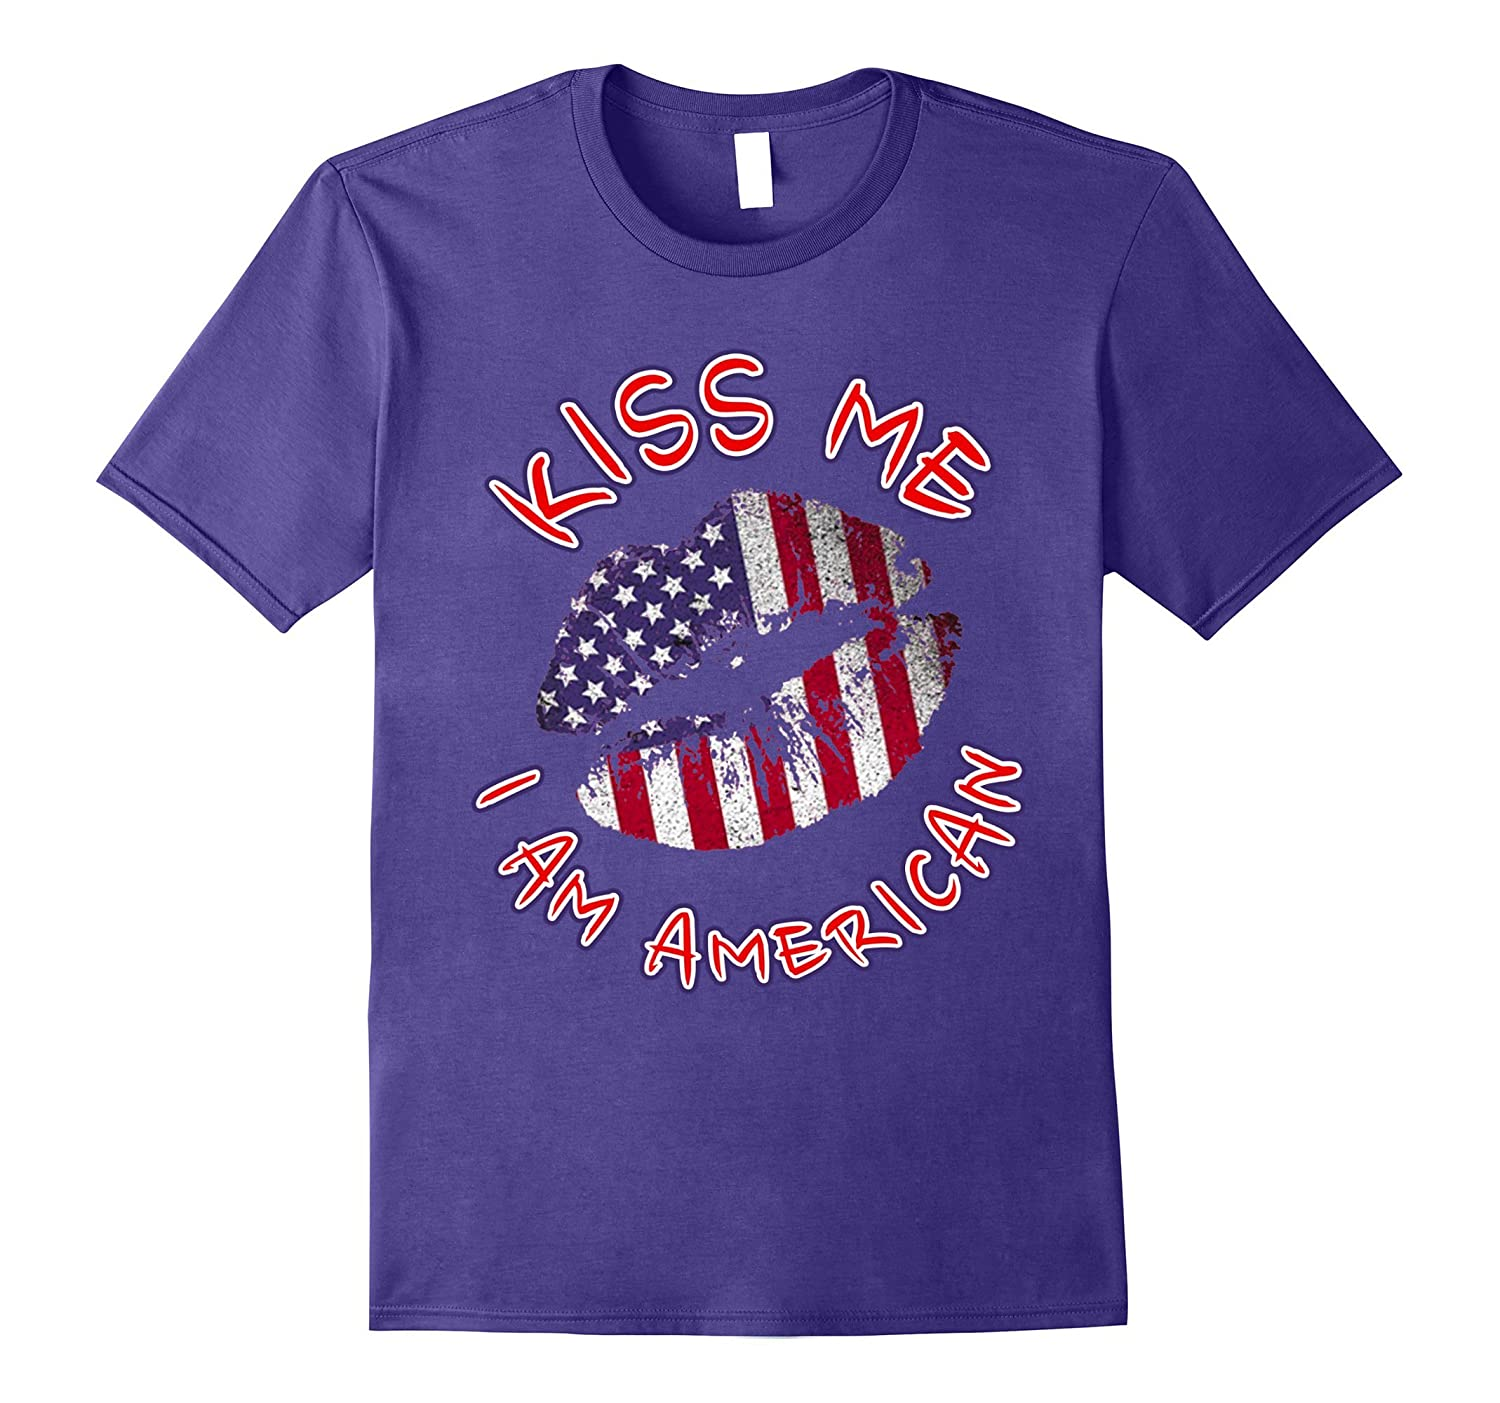 2017 Kiss Me I am American Independence Day T-shirt-4LVS